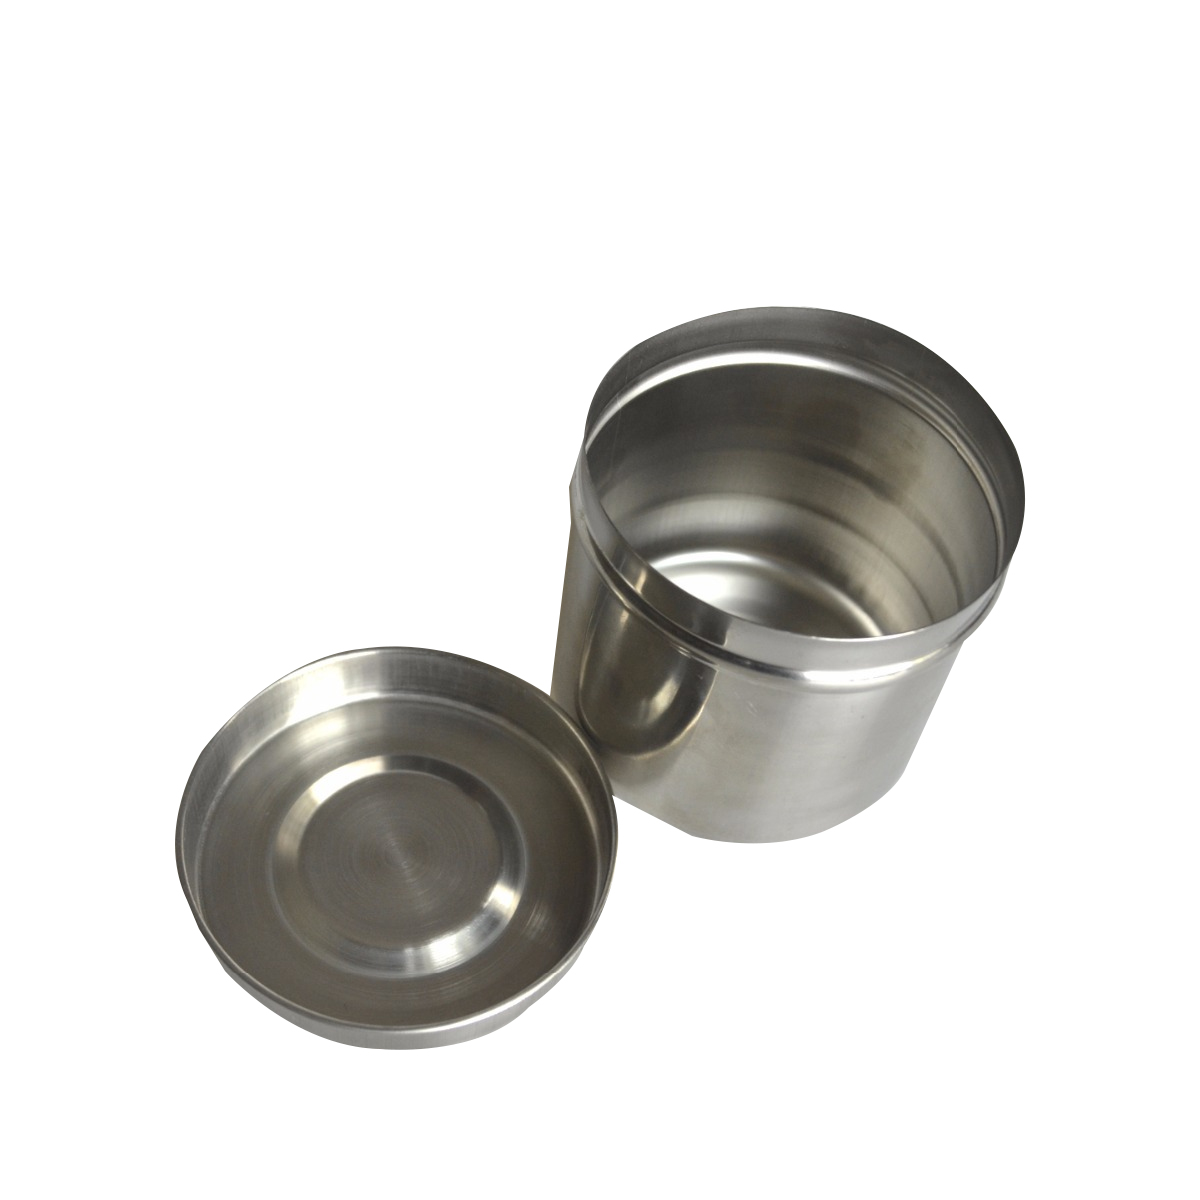 1Pc Medical Cotton Alcohol Tank Cylinder Jar Durable Sterilizer Stainless Steel Eyebrow Tools For Surgical Use